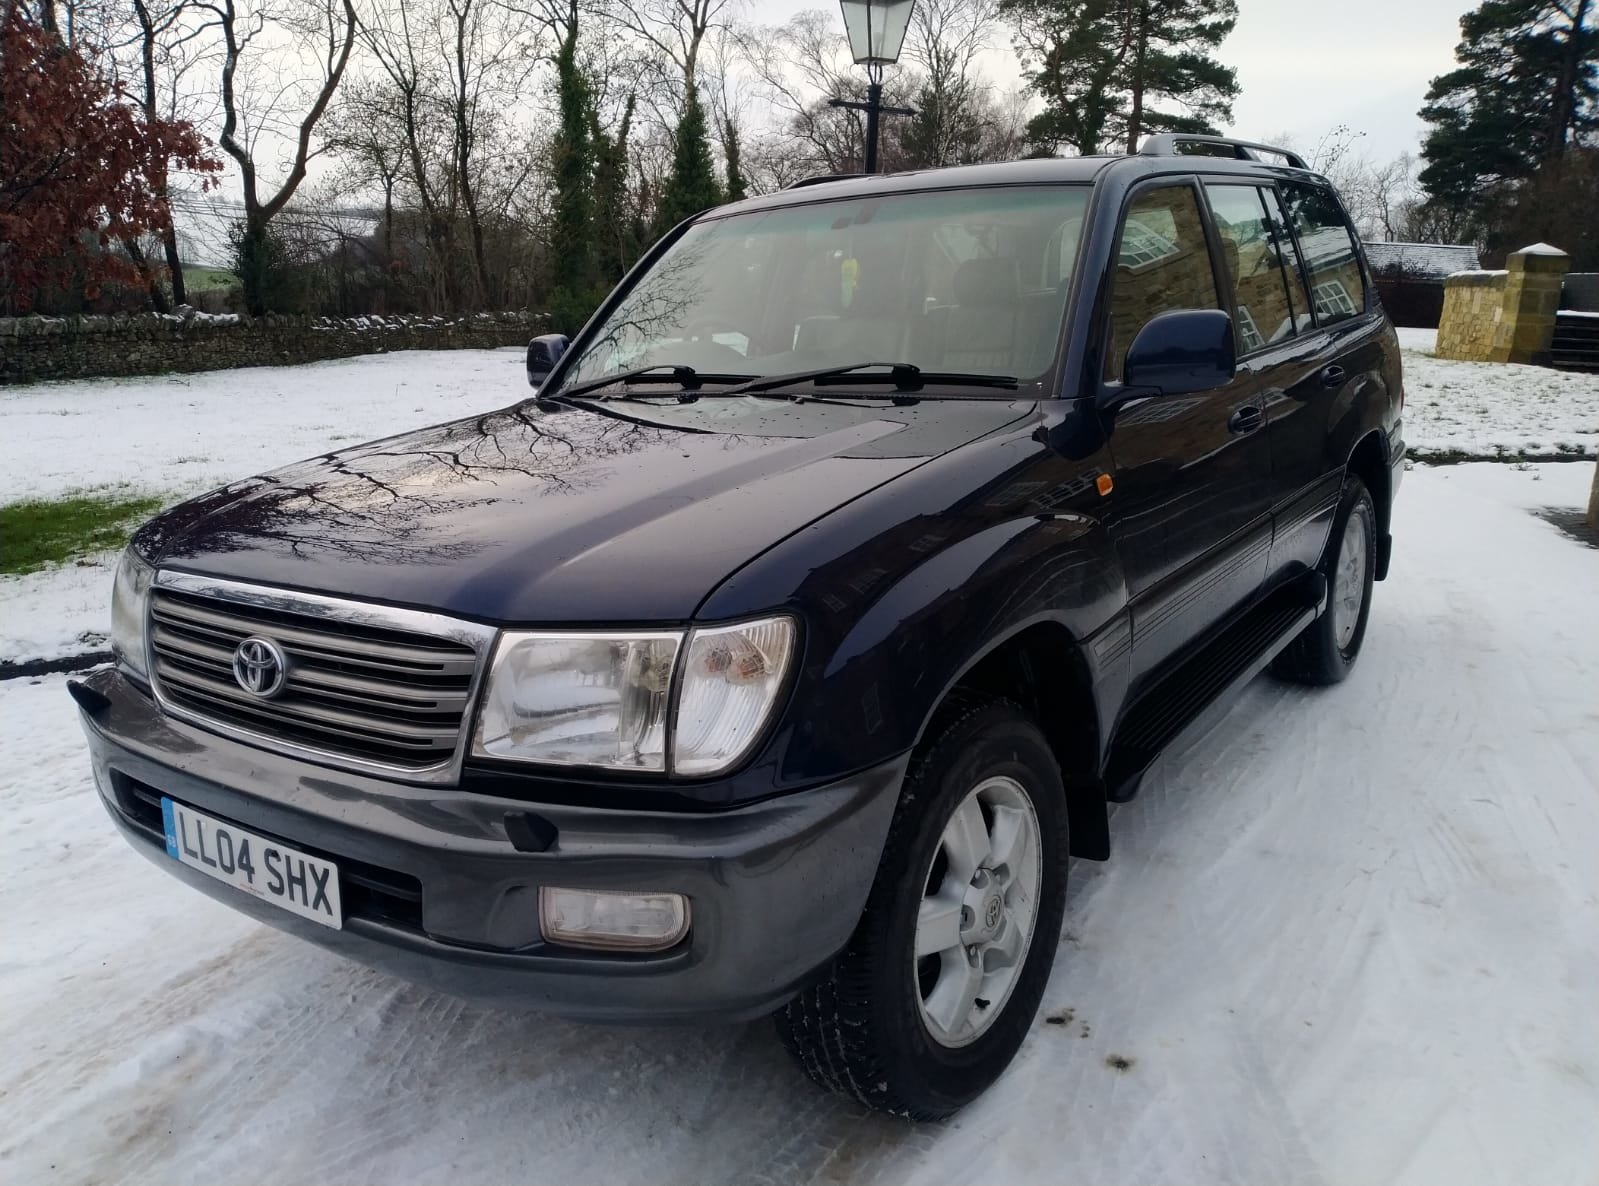 2004 Toyota Land cruiser Amazon TD 4.2 Auto For Sale (picture 1 of 12)